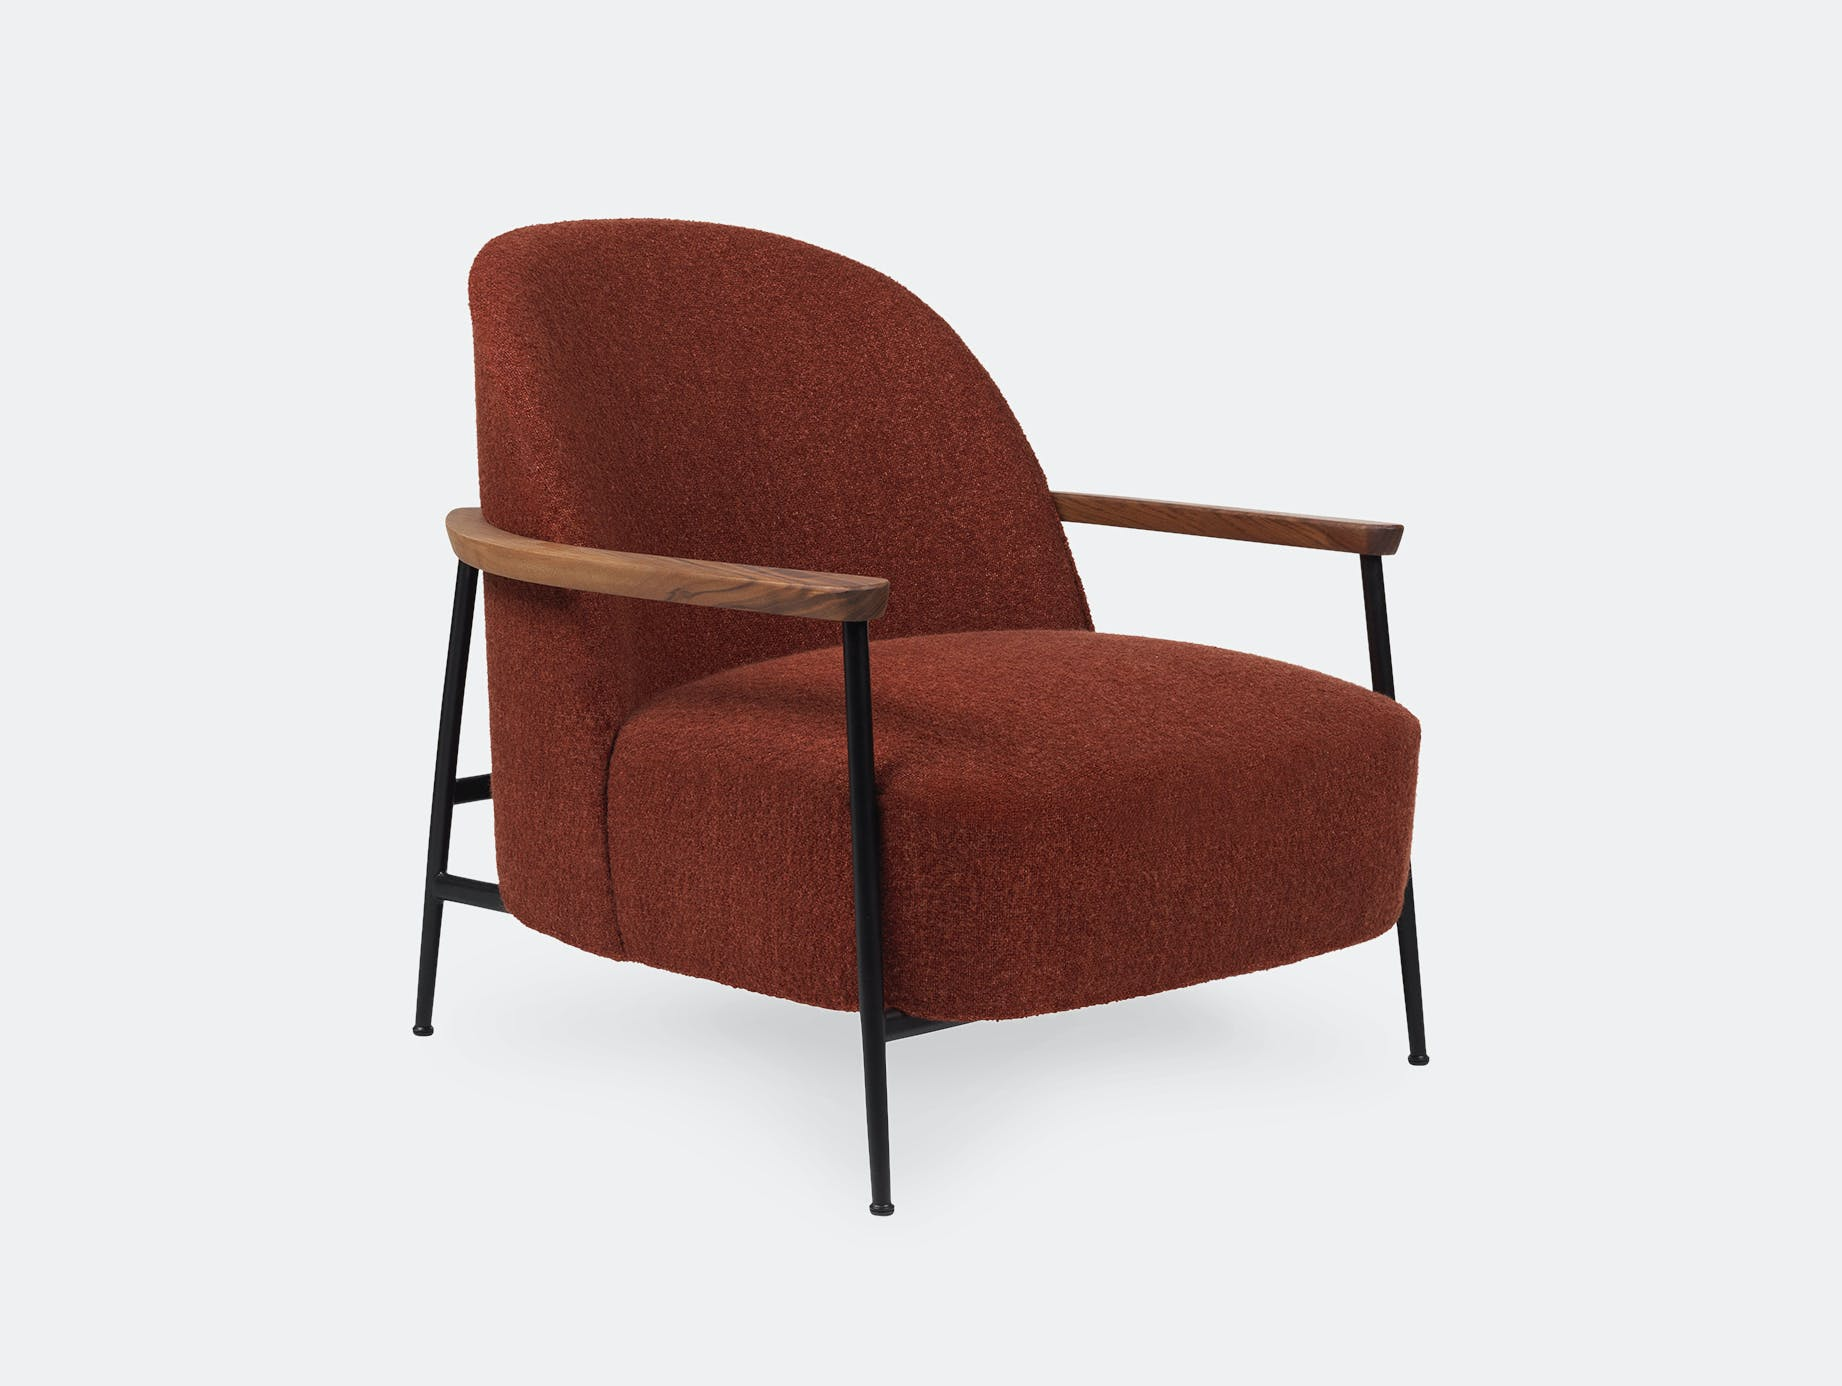 Gubi sejour lounge chair 1